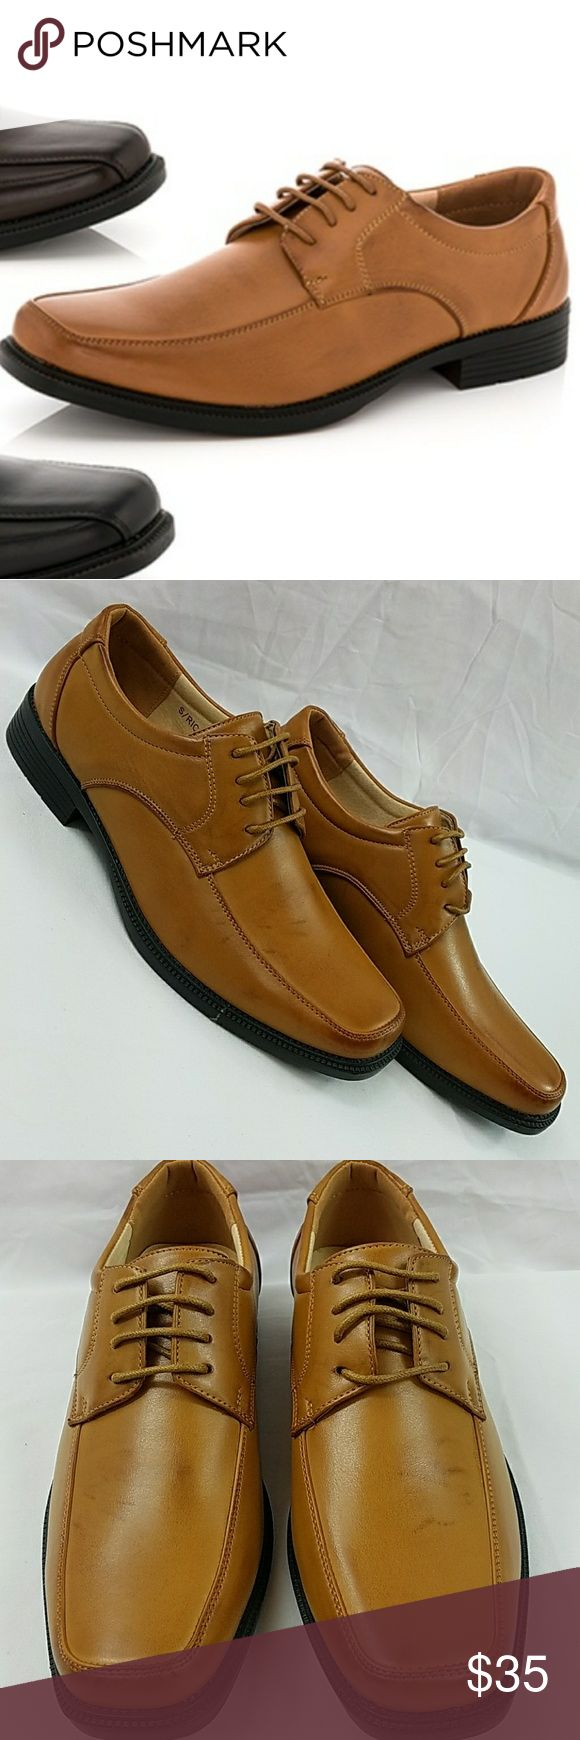 Mens Tan Leather Lace Oxford Size 7.5 Franco Vannuci Leather Lining Brand New In Box Never Worn   341 Shoes Oxfords & Derbys